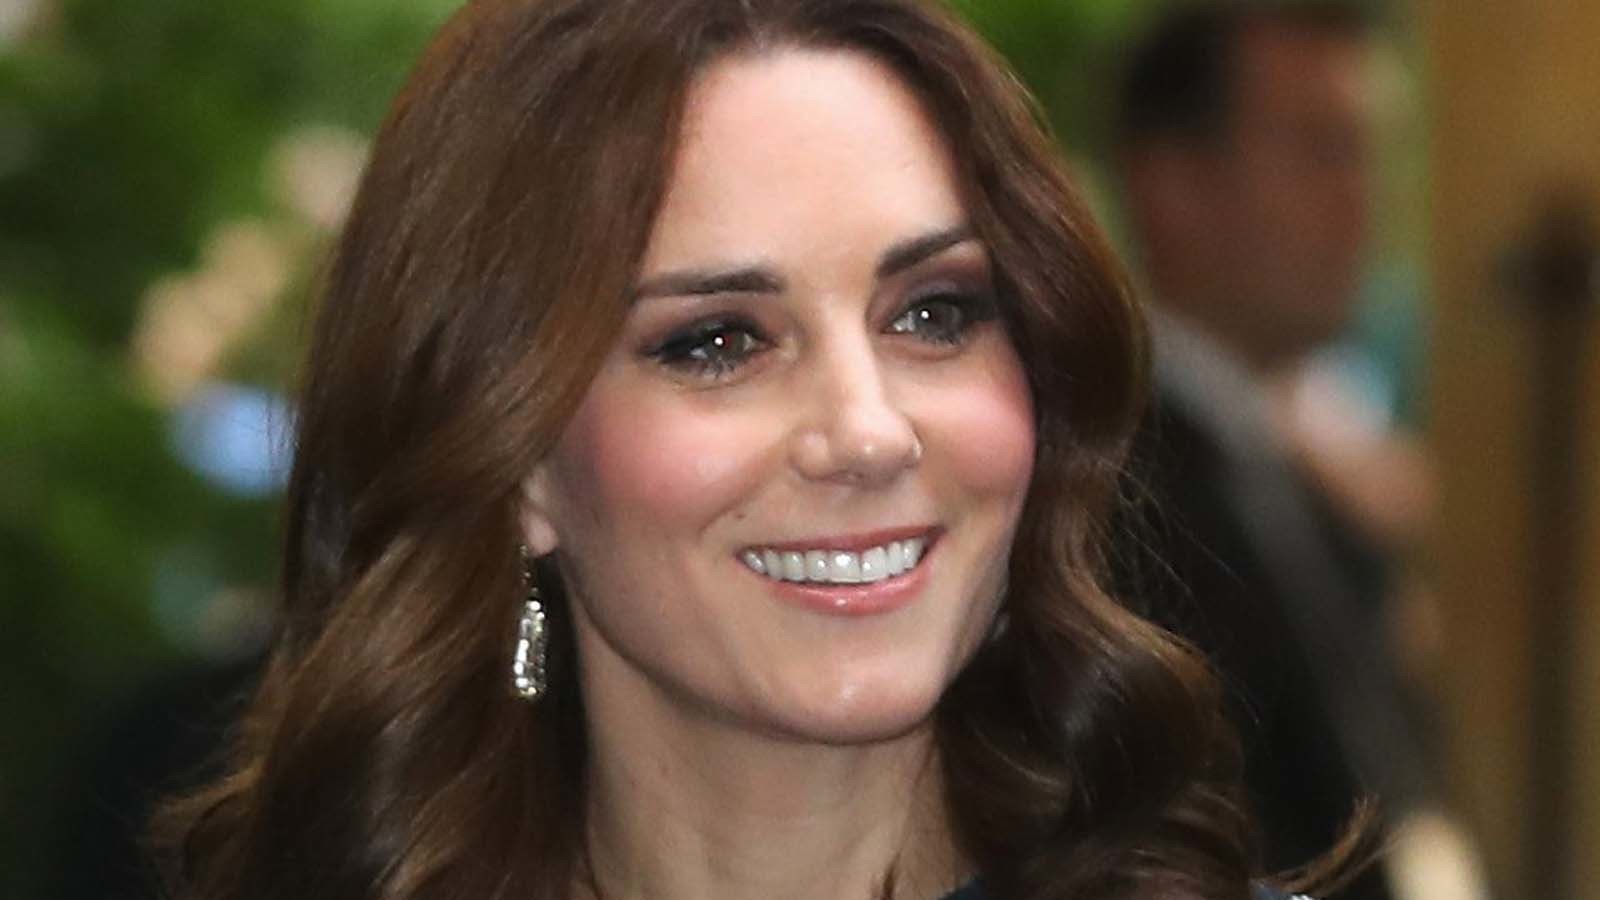 Royals Awarded 120,000 Over Topless Pictures Of Duchess Kate - Orlando Sentinel-9504